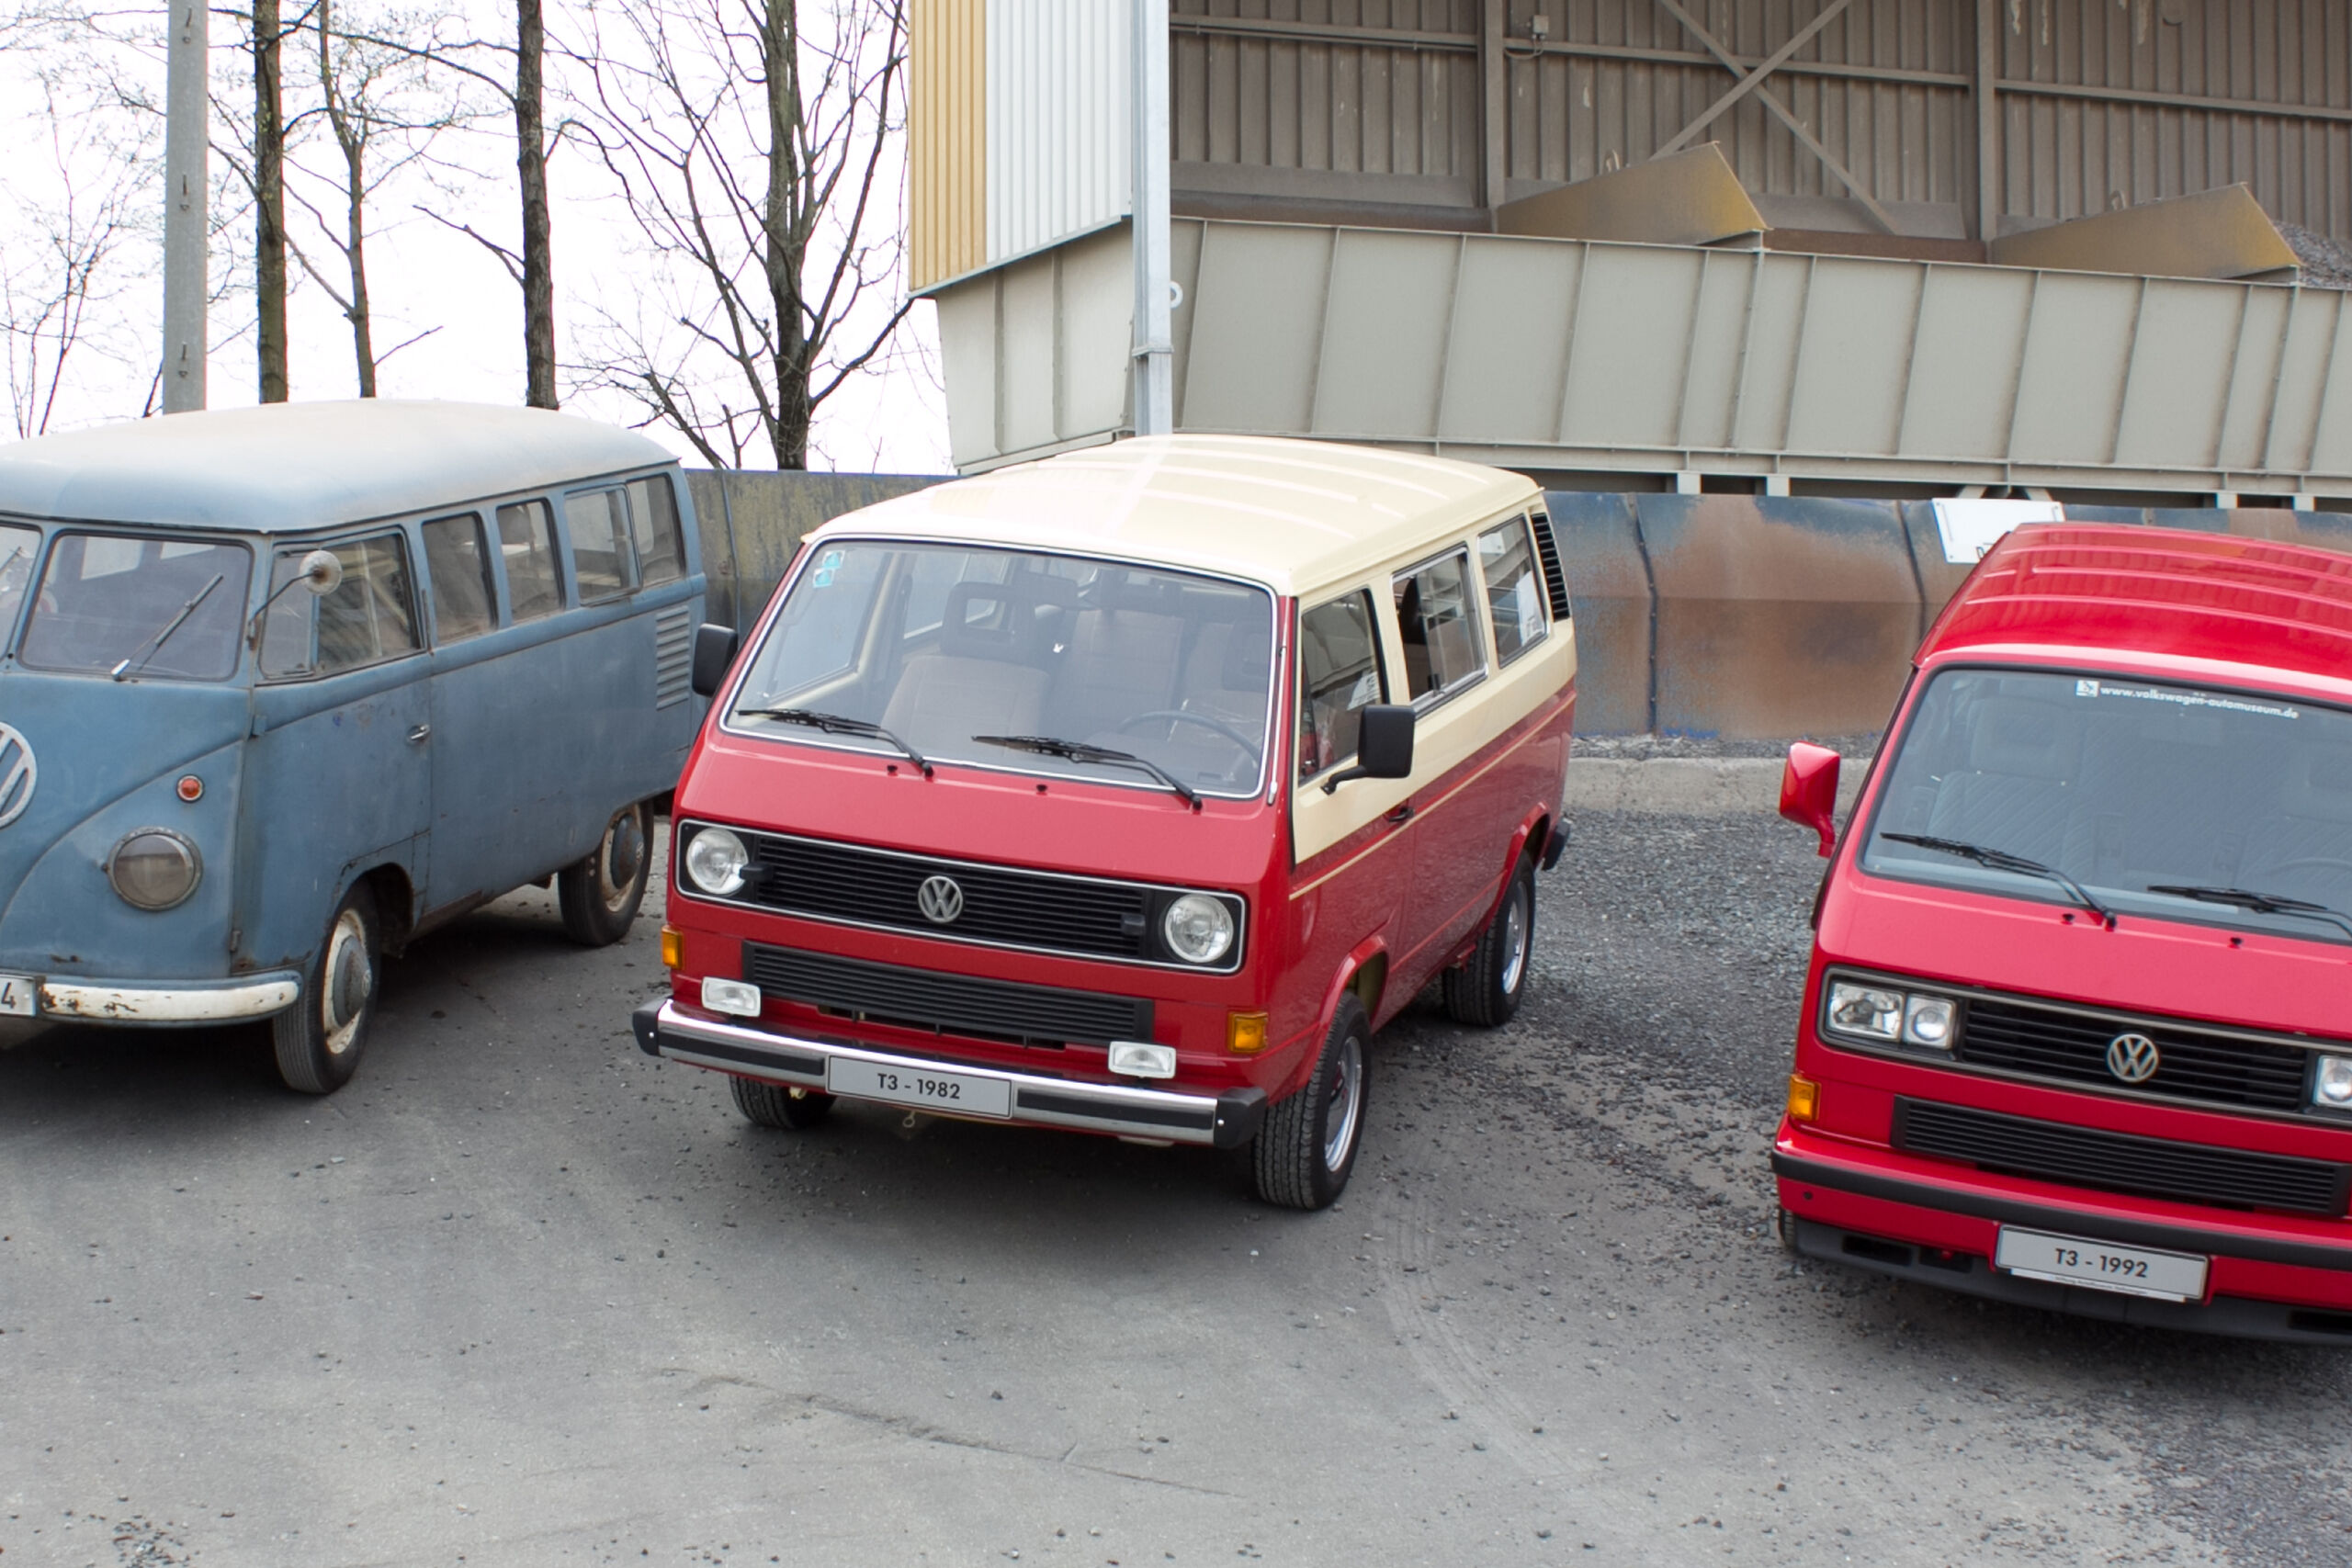 VW T1 Автомобил с радар за измерване 1953 T3 Bus 1982 T3 Limited Last Edition 1992